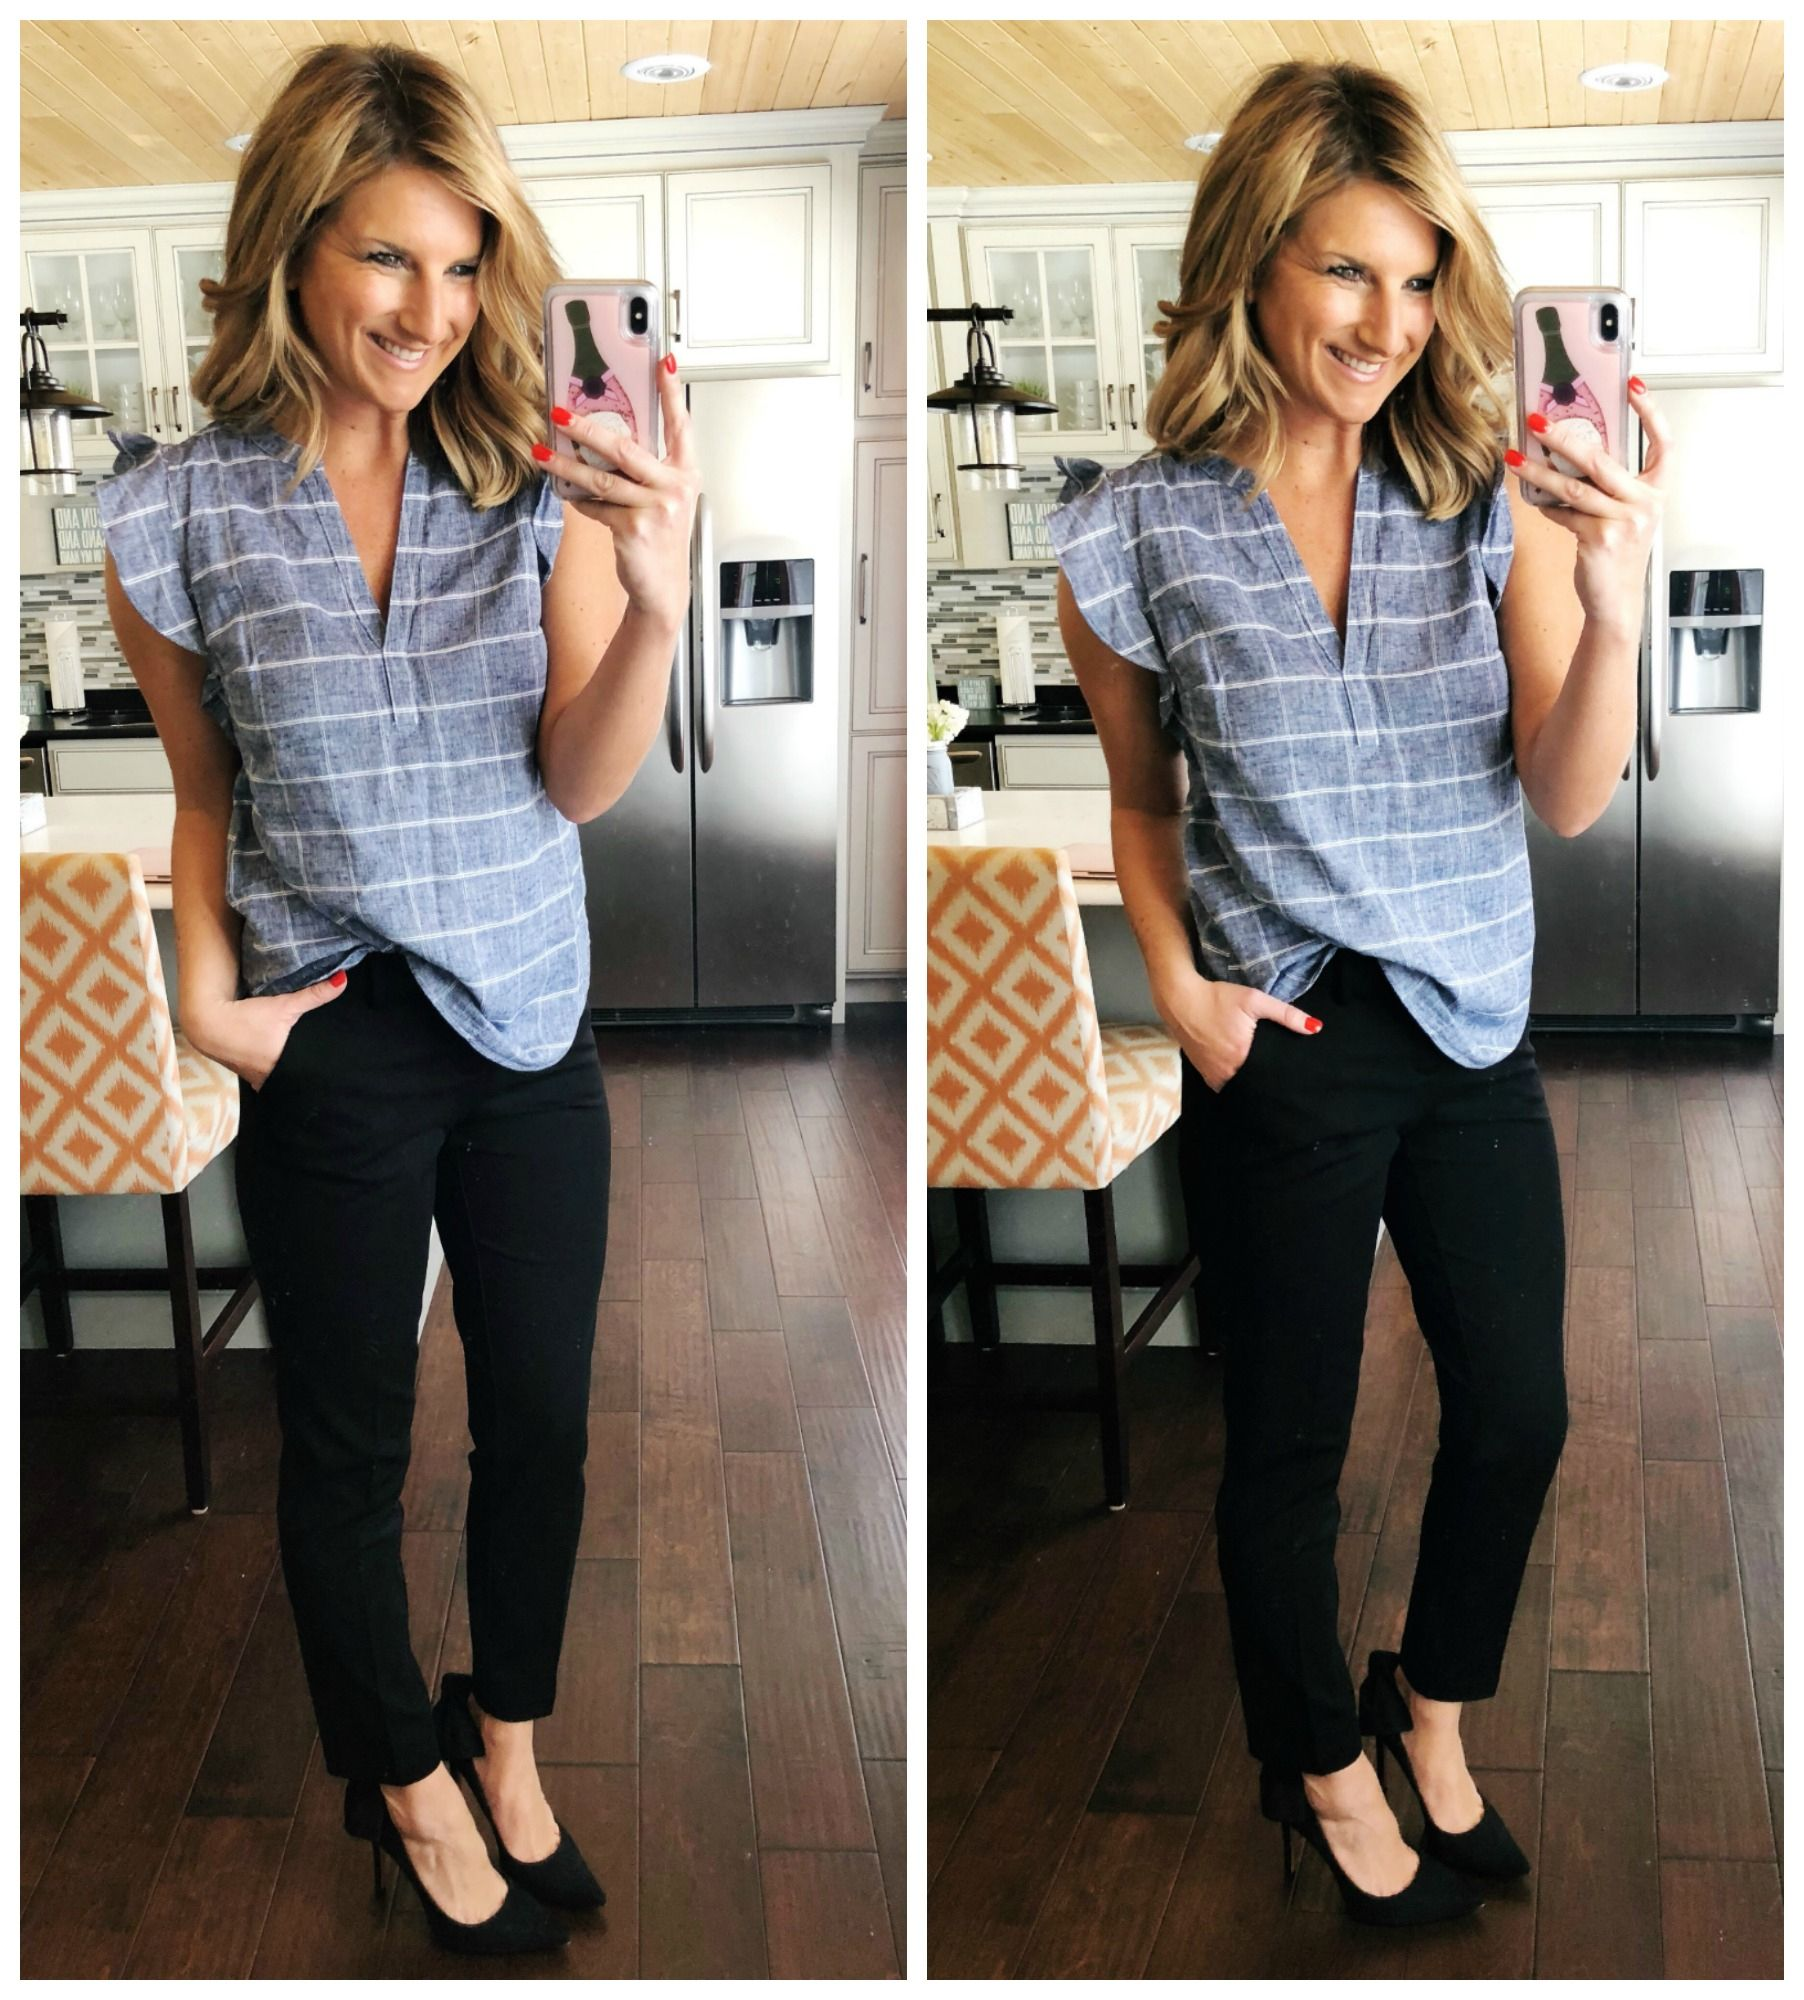 Kelsey Knit Trouser Super Stretch Ponte Work Outfits Women Casual Work Wear Comfortable Work Clothes